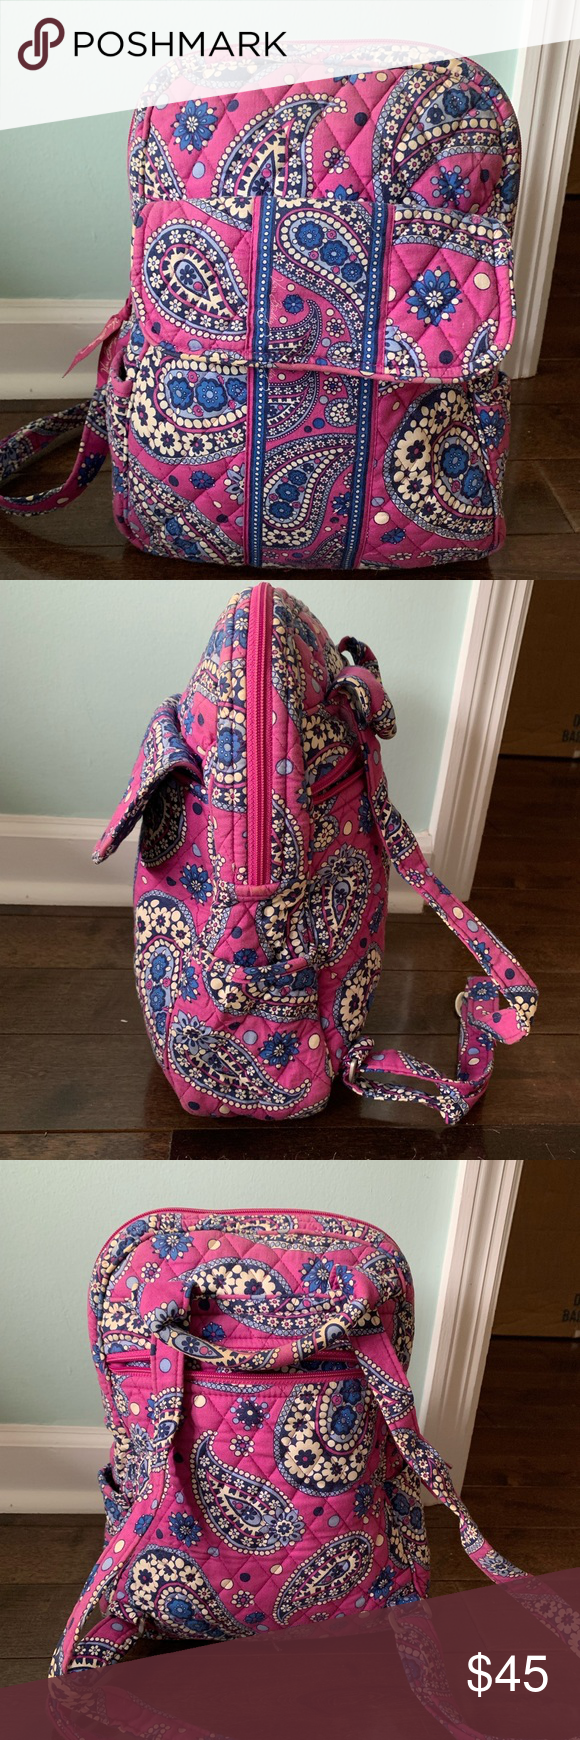 Authentic Vera Bradley Backpack (Small) Authentic Vera Bradley Backpack (Small) - Used, no tears, sl...